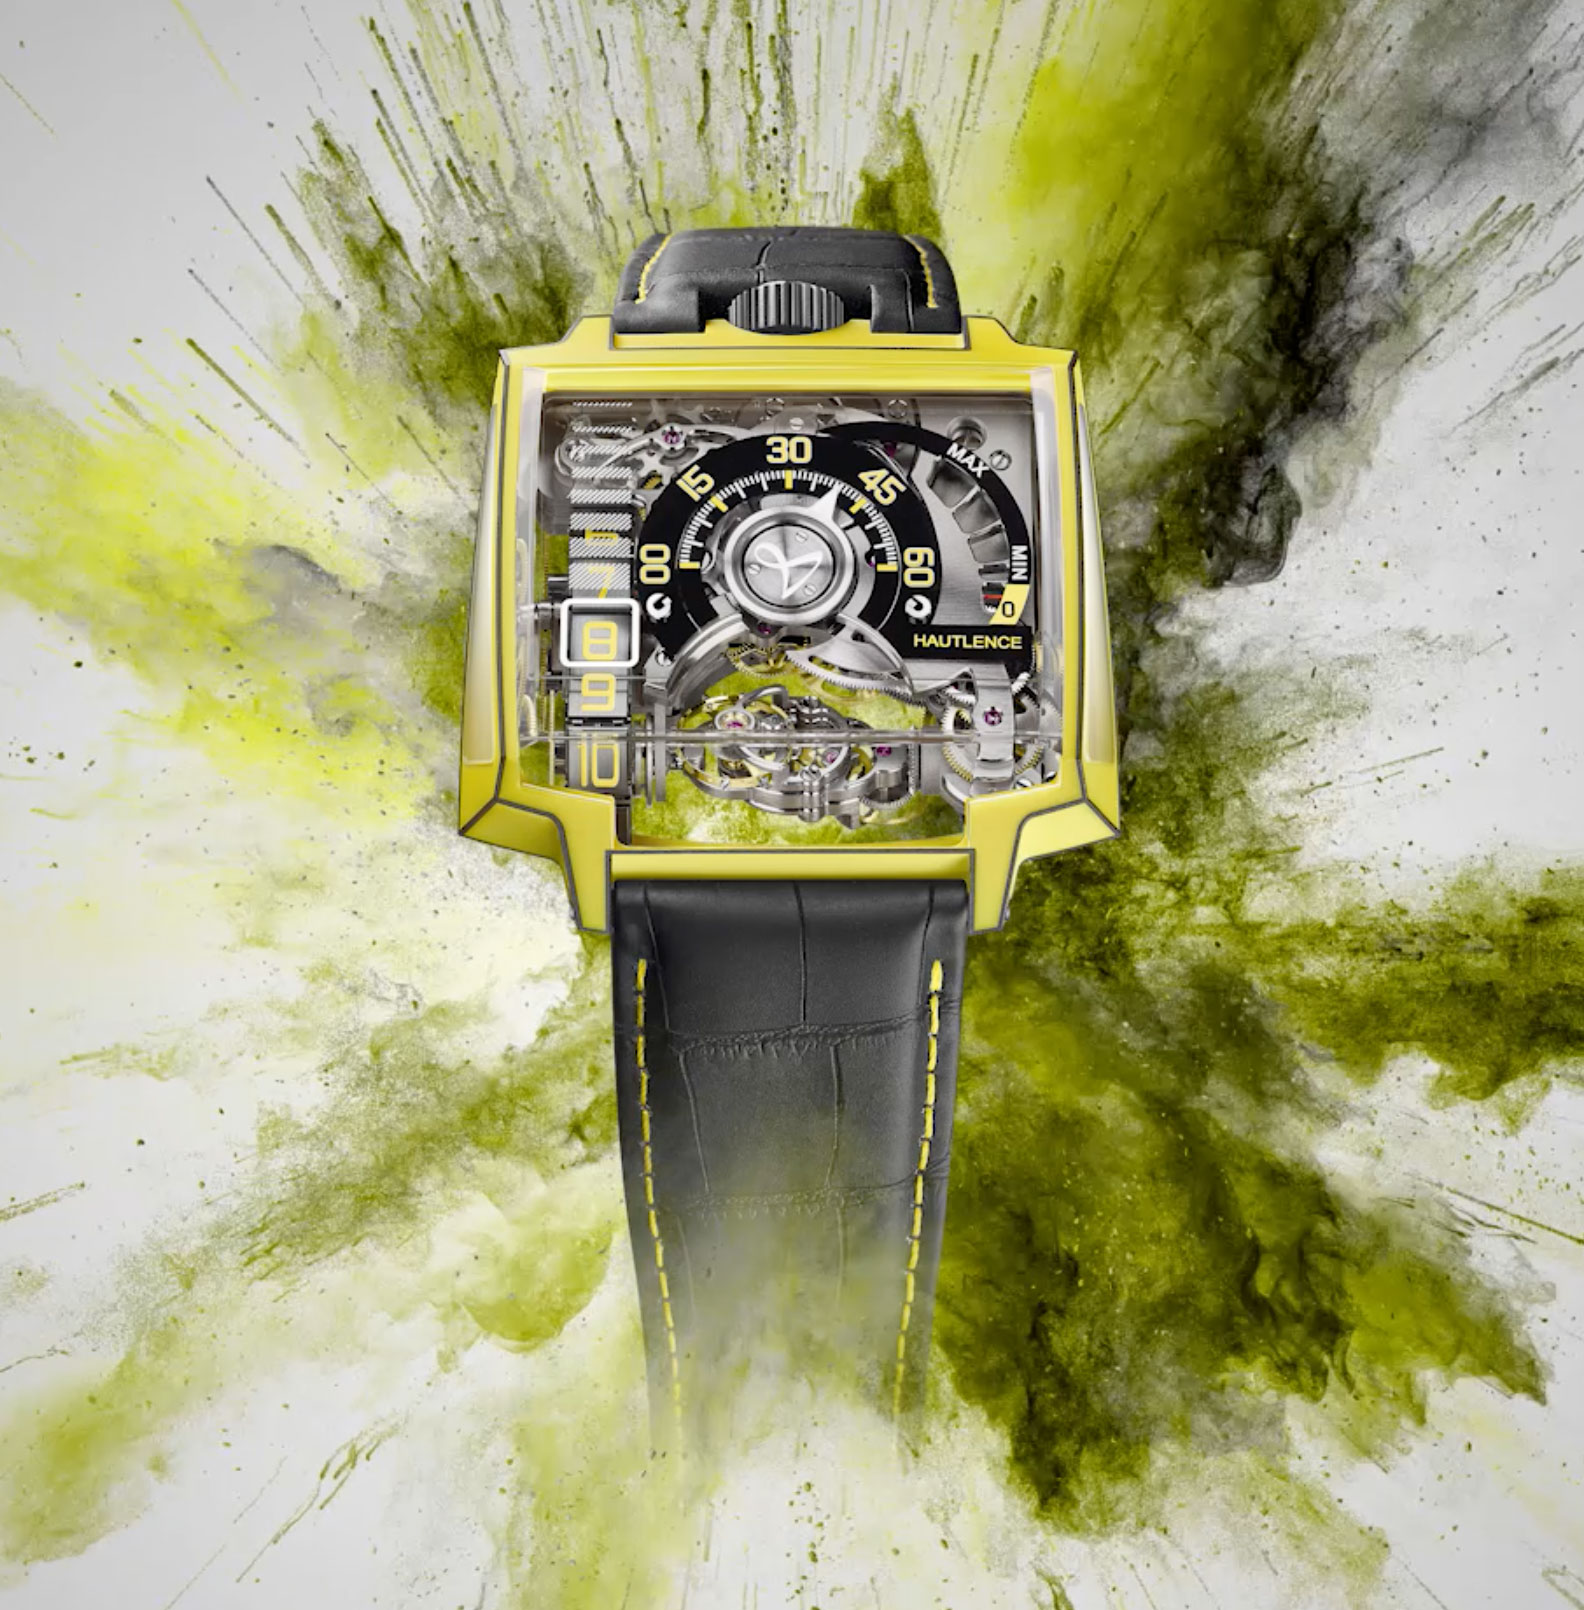 Hautelence Vortex Gamma yellow